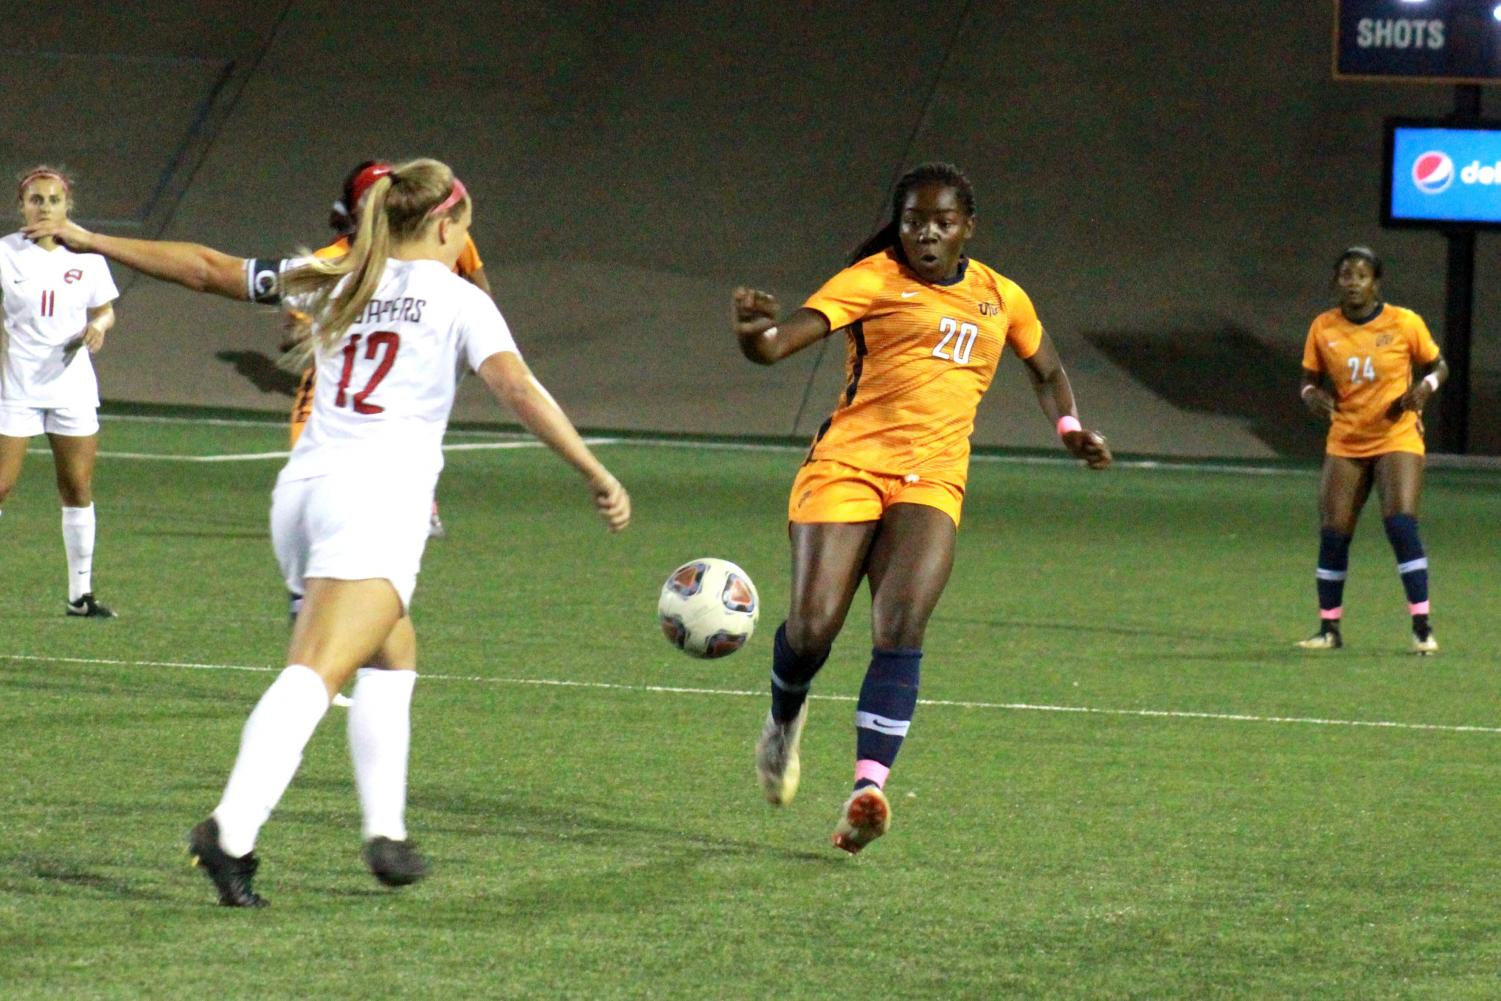 UTEP women's soccer vs. WKU at El Paso, Texas.